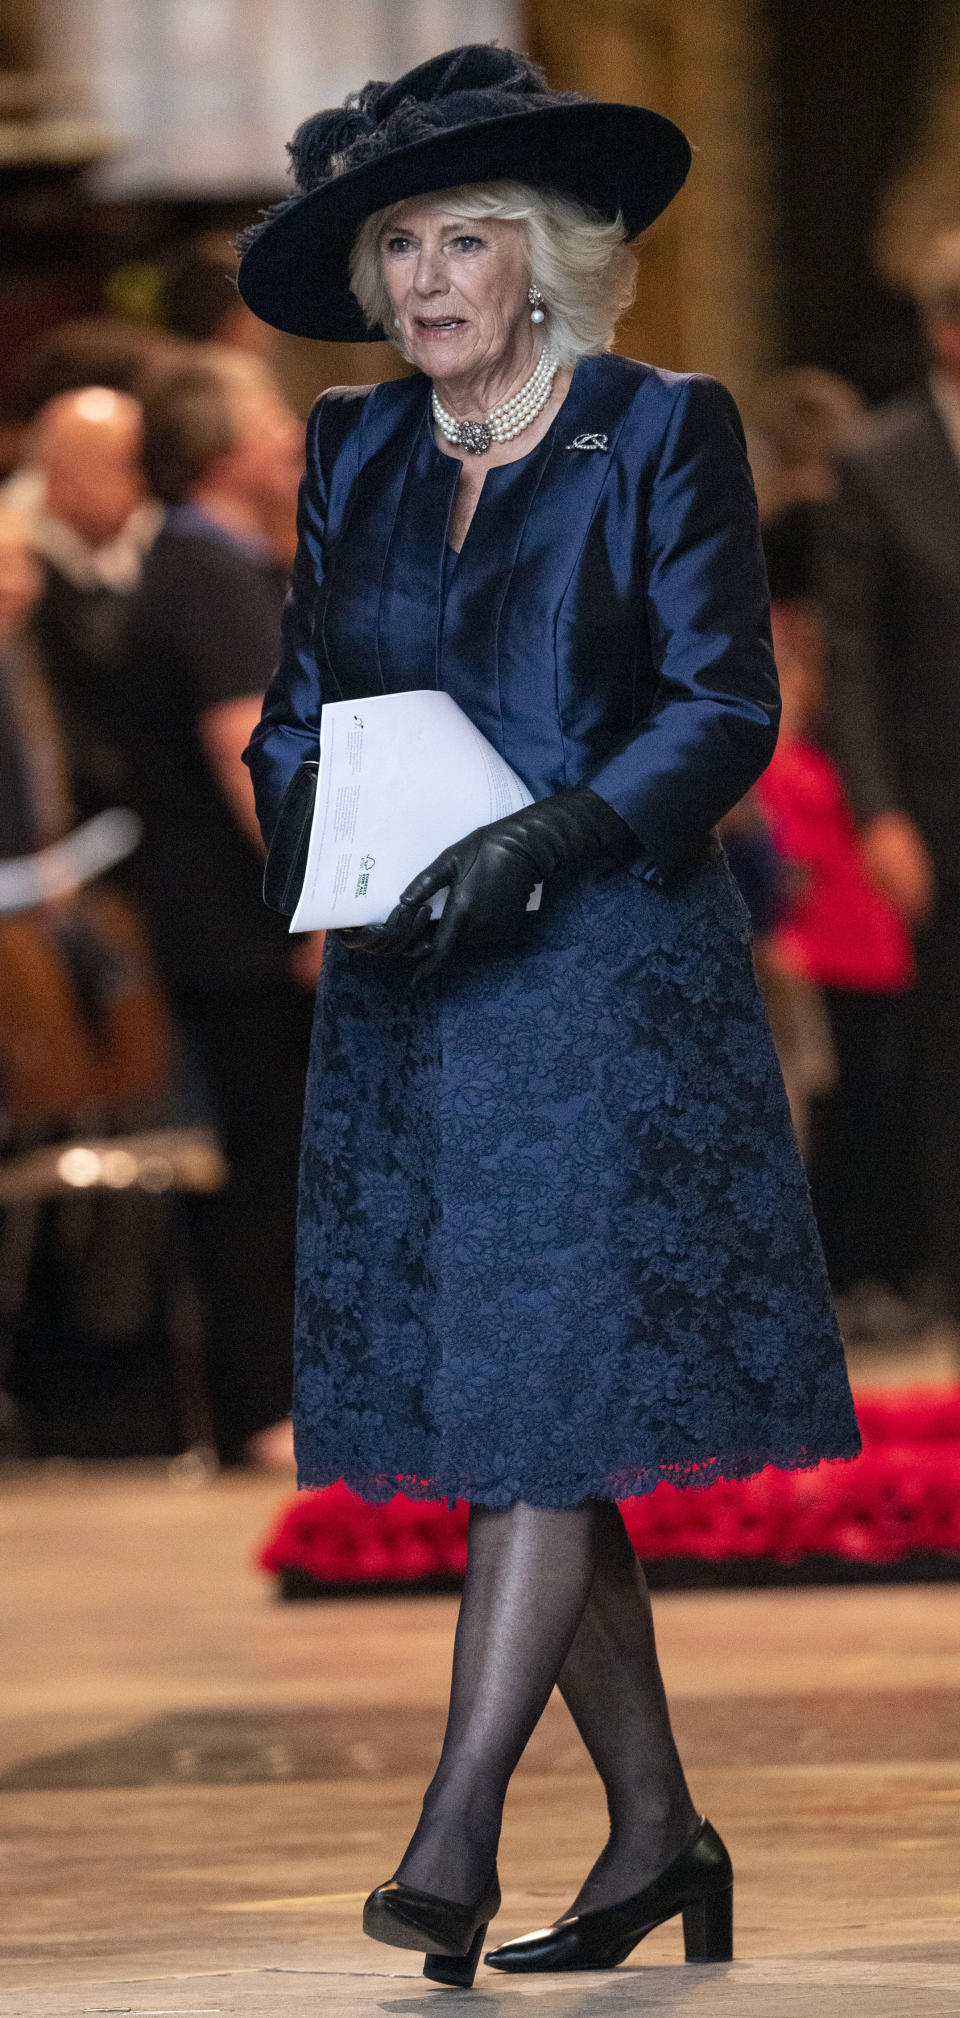 LONDON, ENGLAND - MARCH 09: Camilla, Duchess of Cornwall attends the Commonwealth Day Service 2020 at Westminster Abbey on March 9, 2020 in London, England. (Photo by Mark Cuthbert/UK Press via Getty Images)